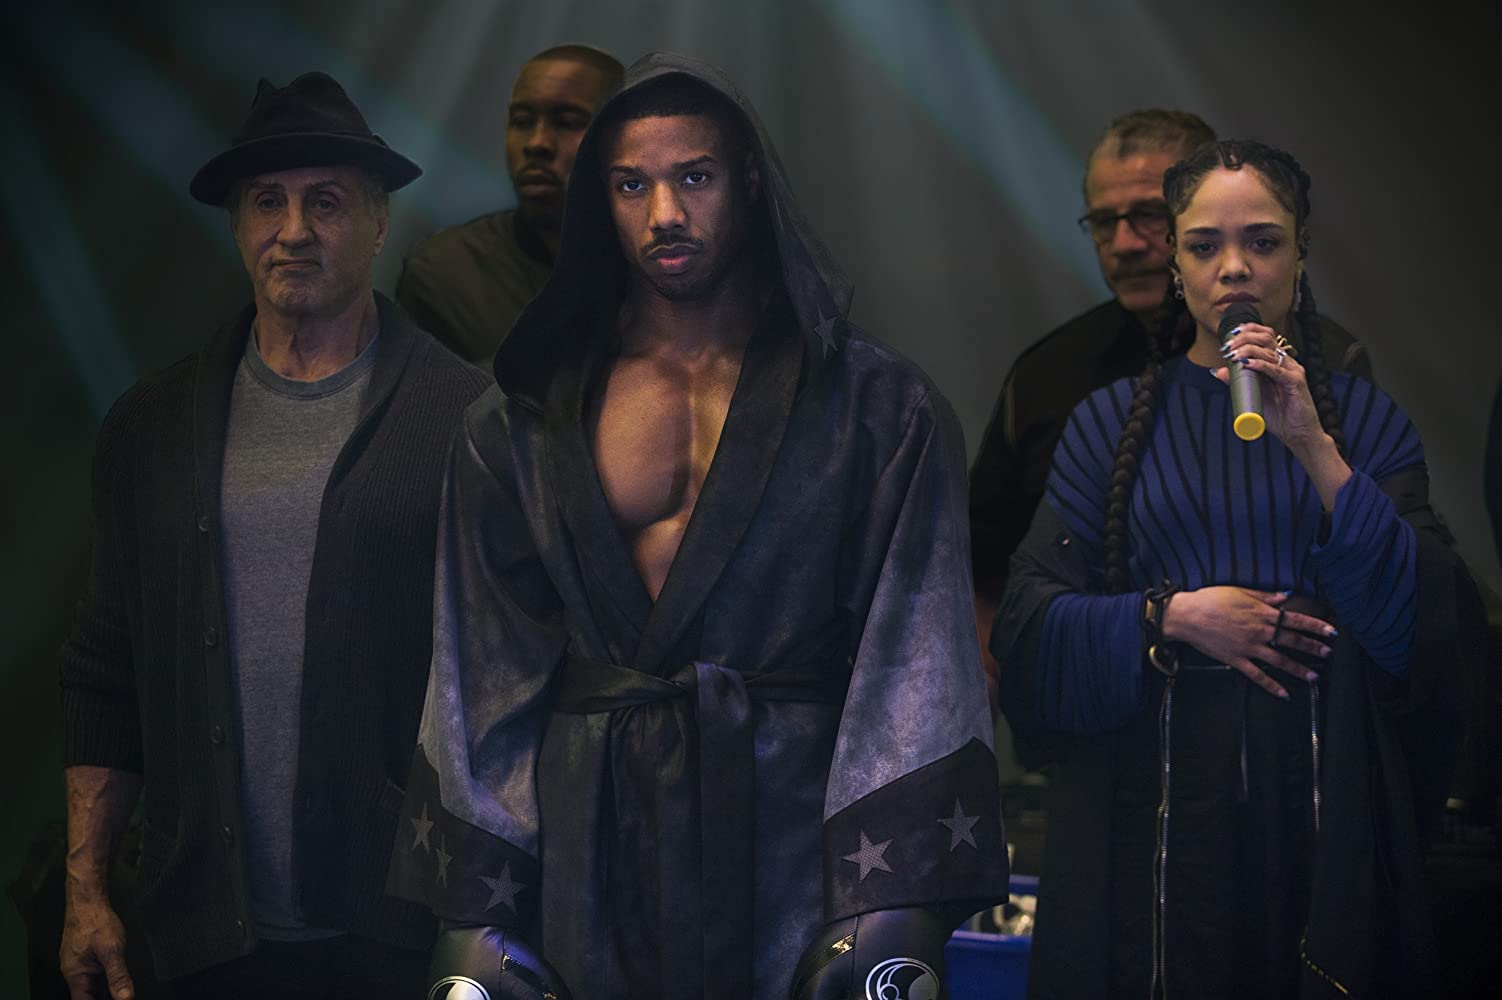 Sylvester Stallone, Jacob 'Stitch' Duran, Wood Harris, Michael B. Jordan, and Tessa Thompson in Creed II (2018)